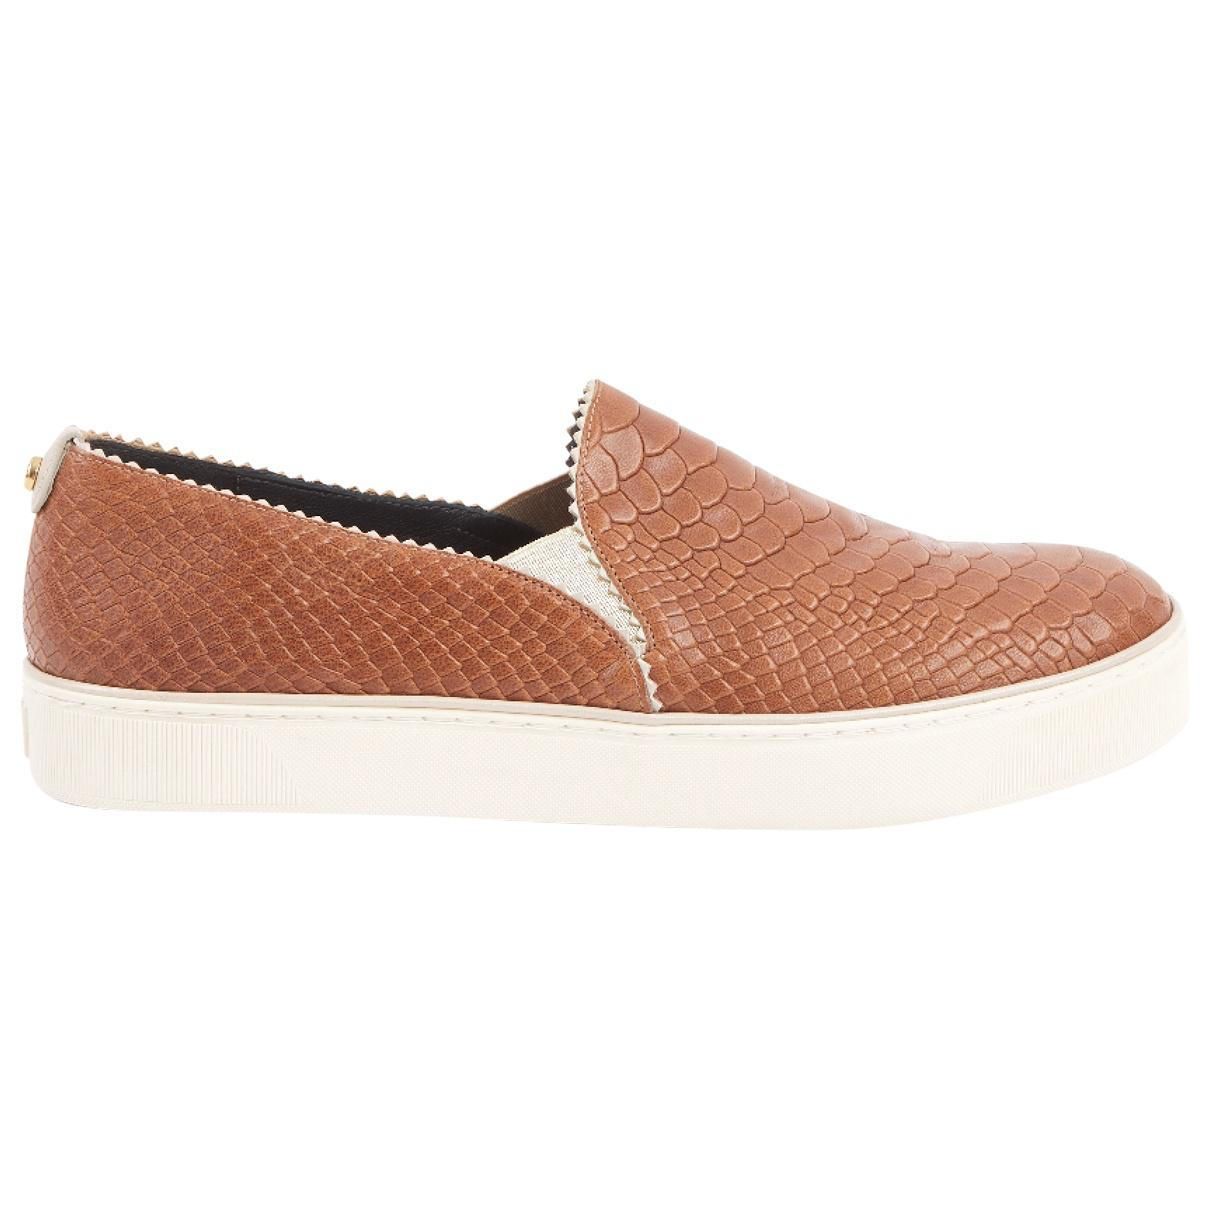 Pre-owned - Leather trainers Stuart Weitzman 3aP8SRs